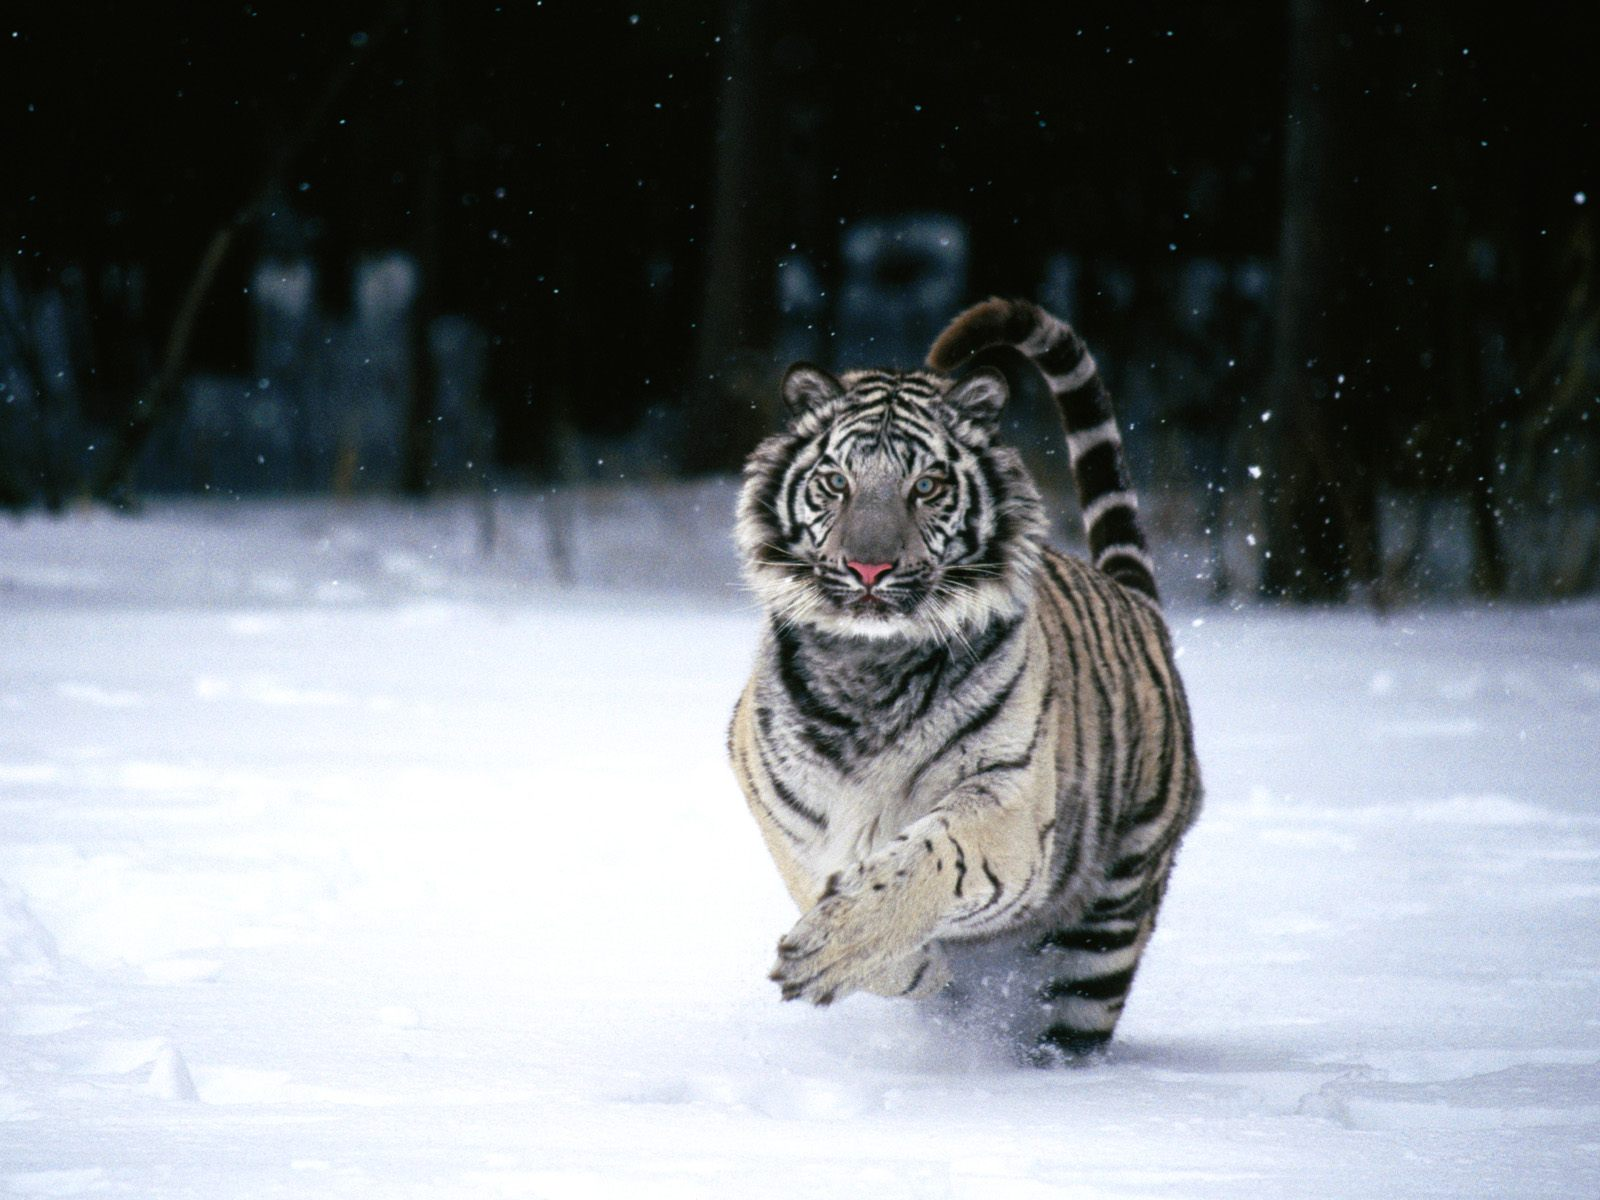 click to free download the wallpaper--Pics of Animals - White Tiger Post in Pixel of 1600x1200, Running Fast in Heavy Snow, It is Energitic and Lively 1600X1200 free wallpaper download